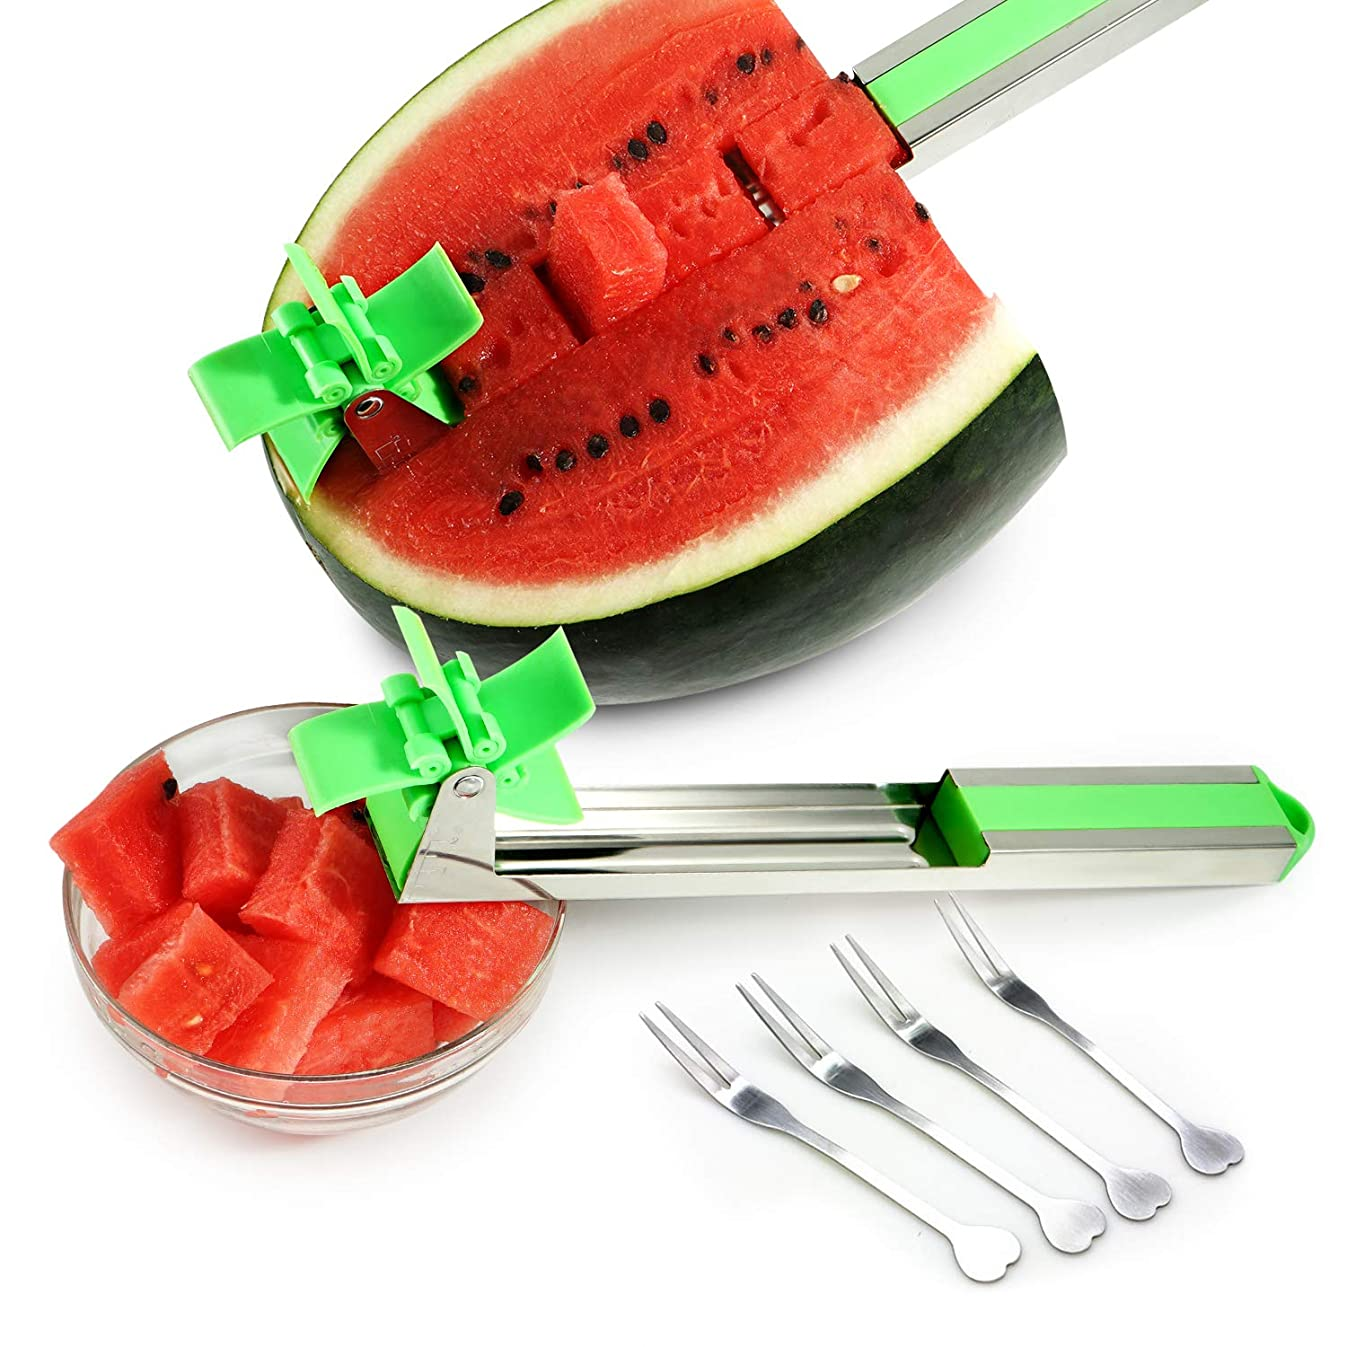 Watermelon Slicer Watermelon Windmill Cutter 2019 New Watermelon Slicer Knife Stainless Steel Fruit Tools Kitchen Gadgets?with 4 Pack Fruit forks